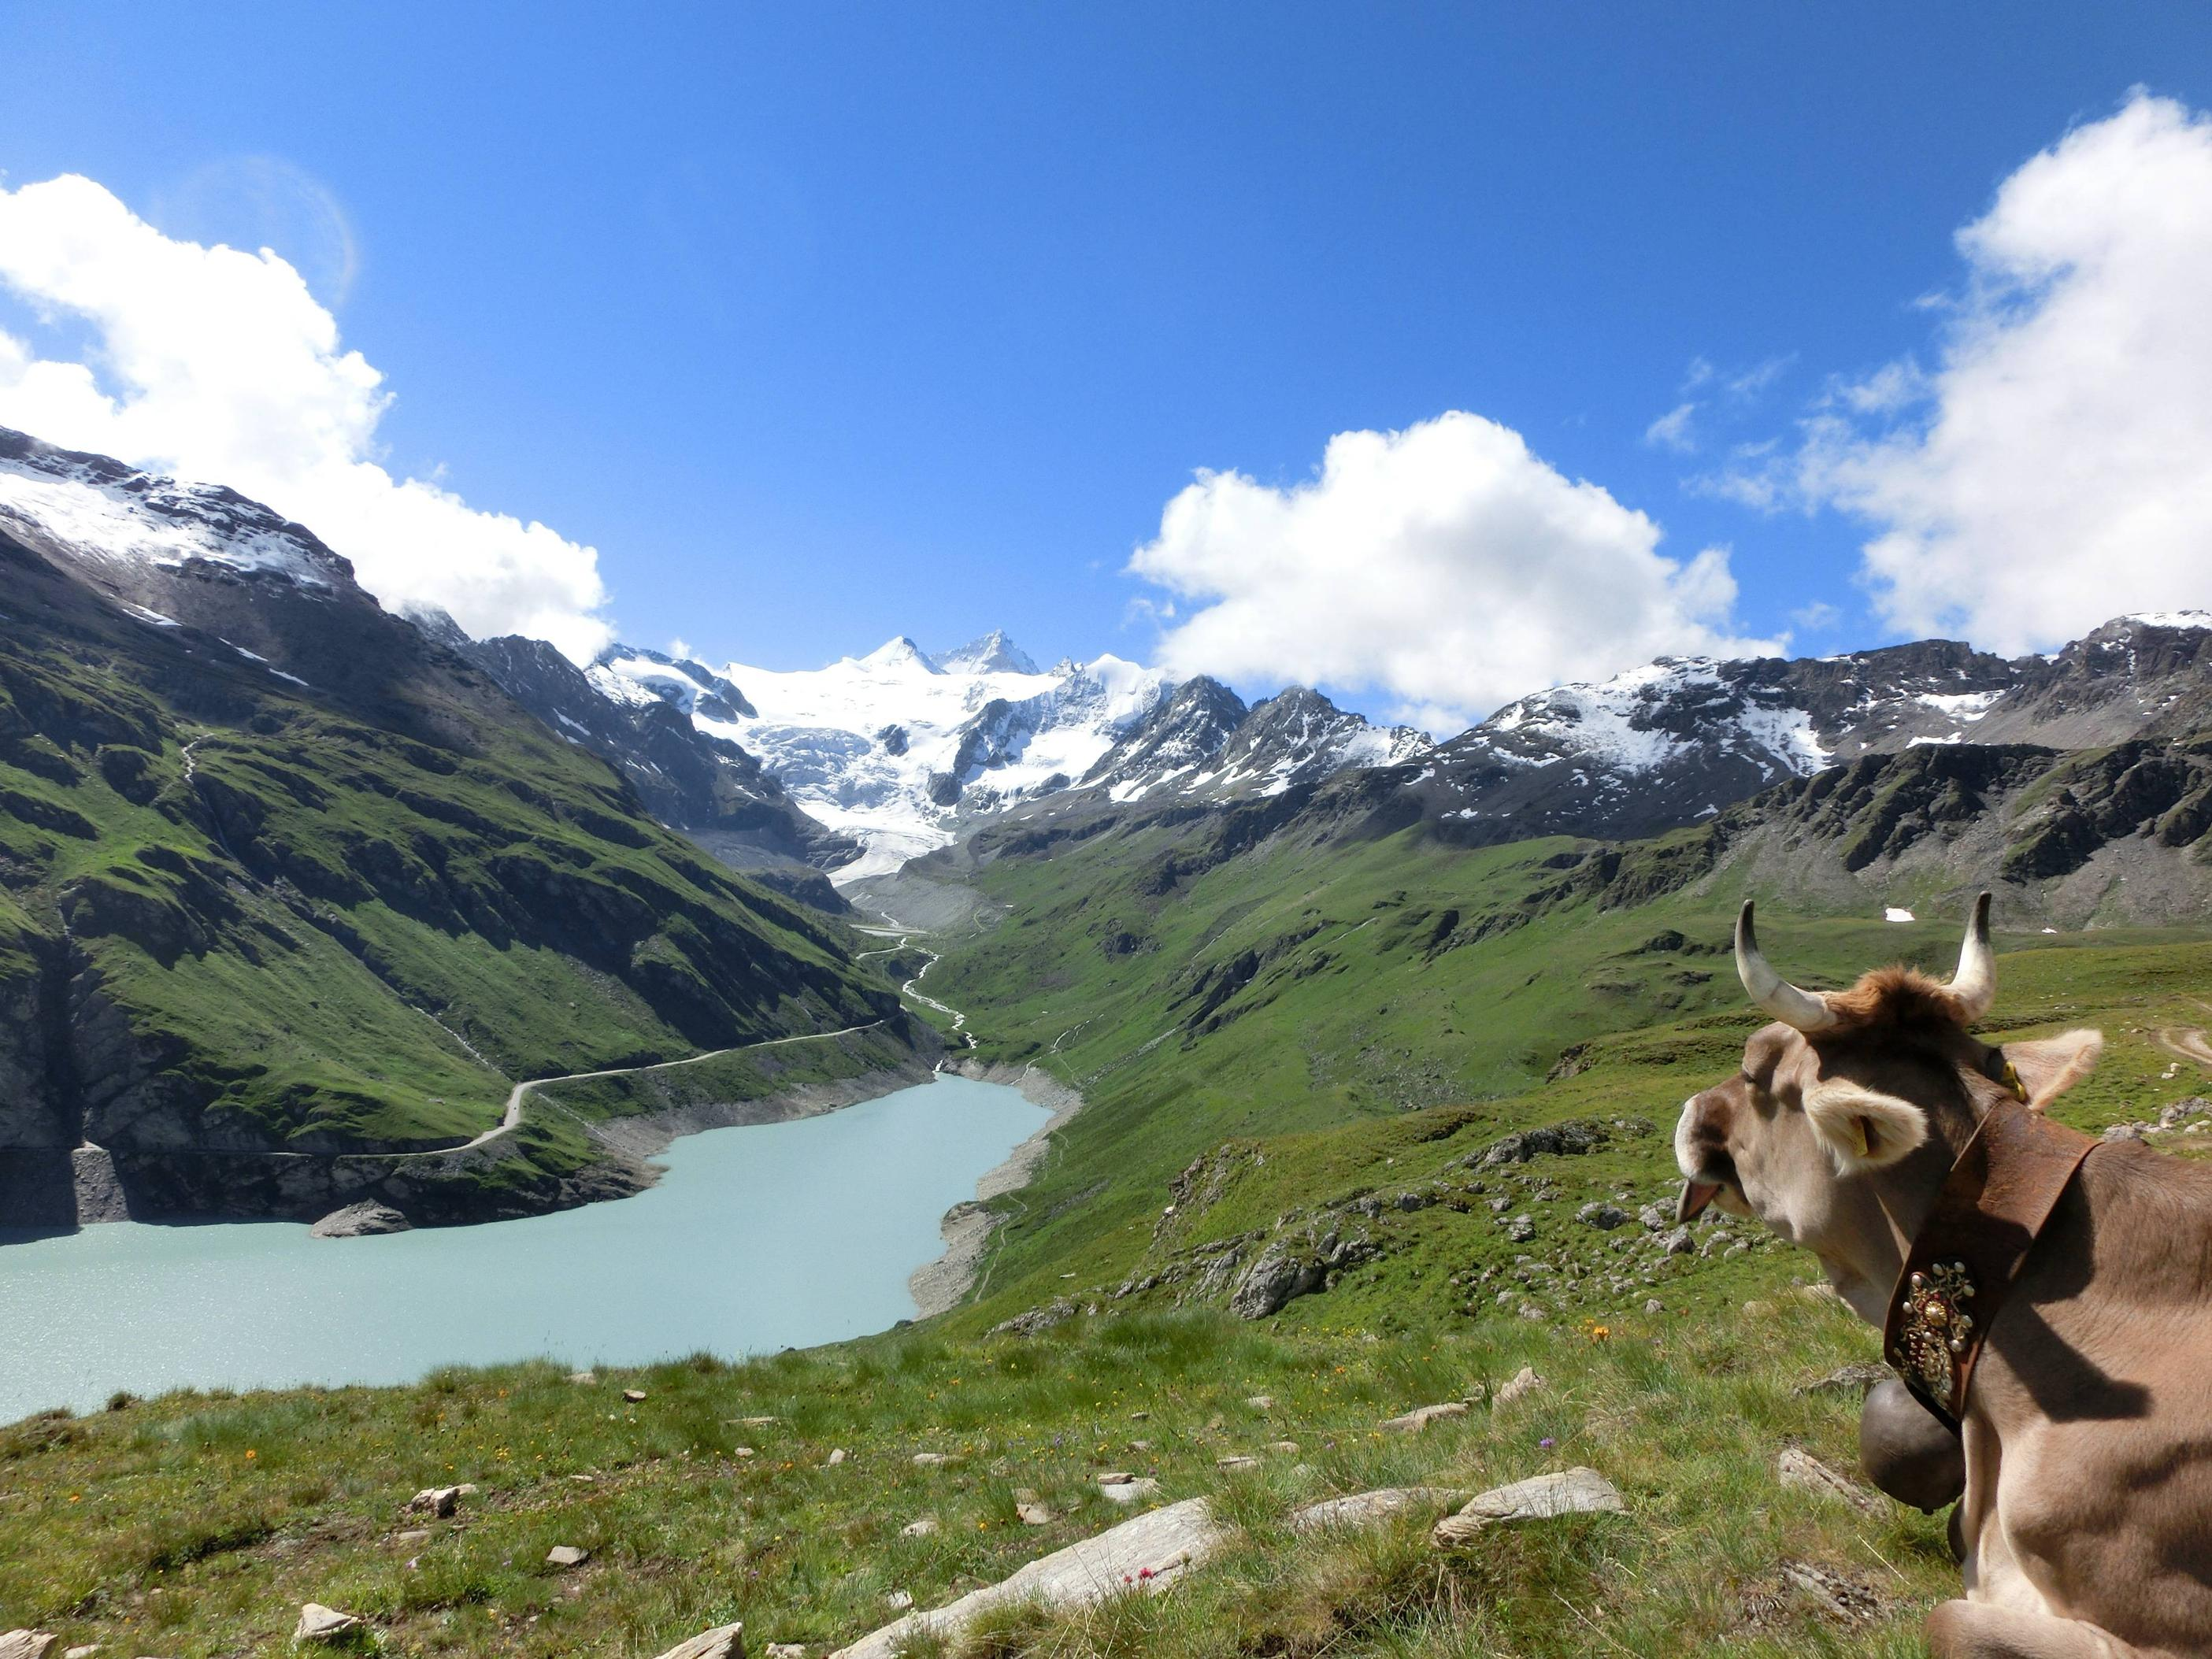 A Swiss cow enjoying the view.